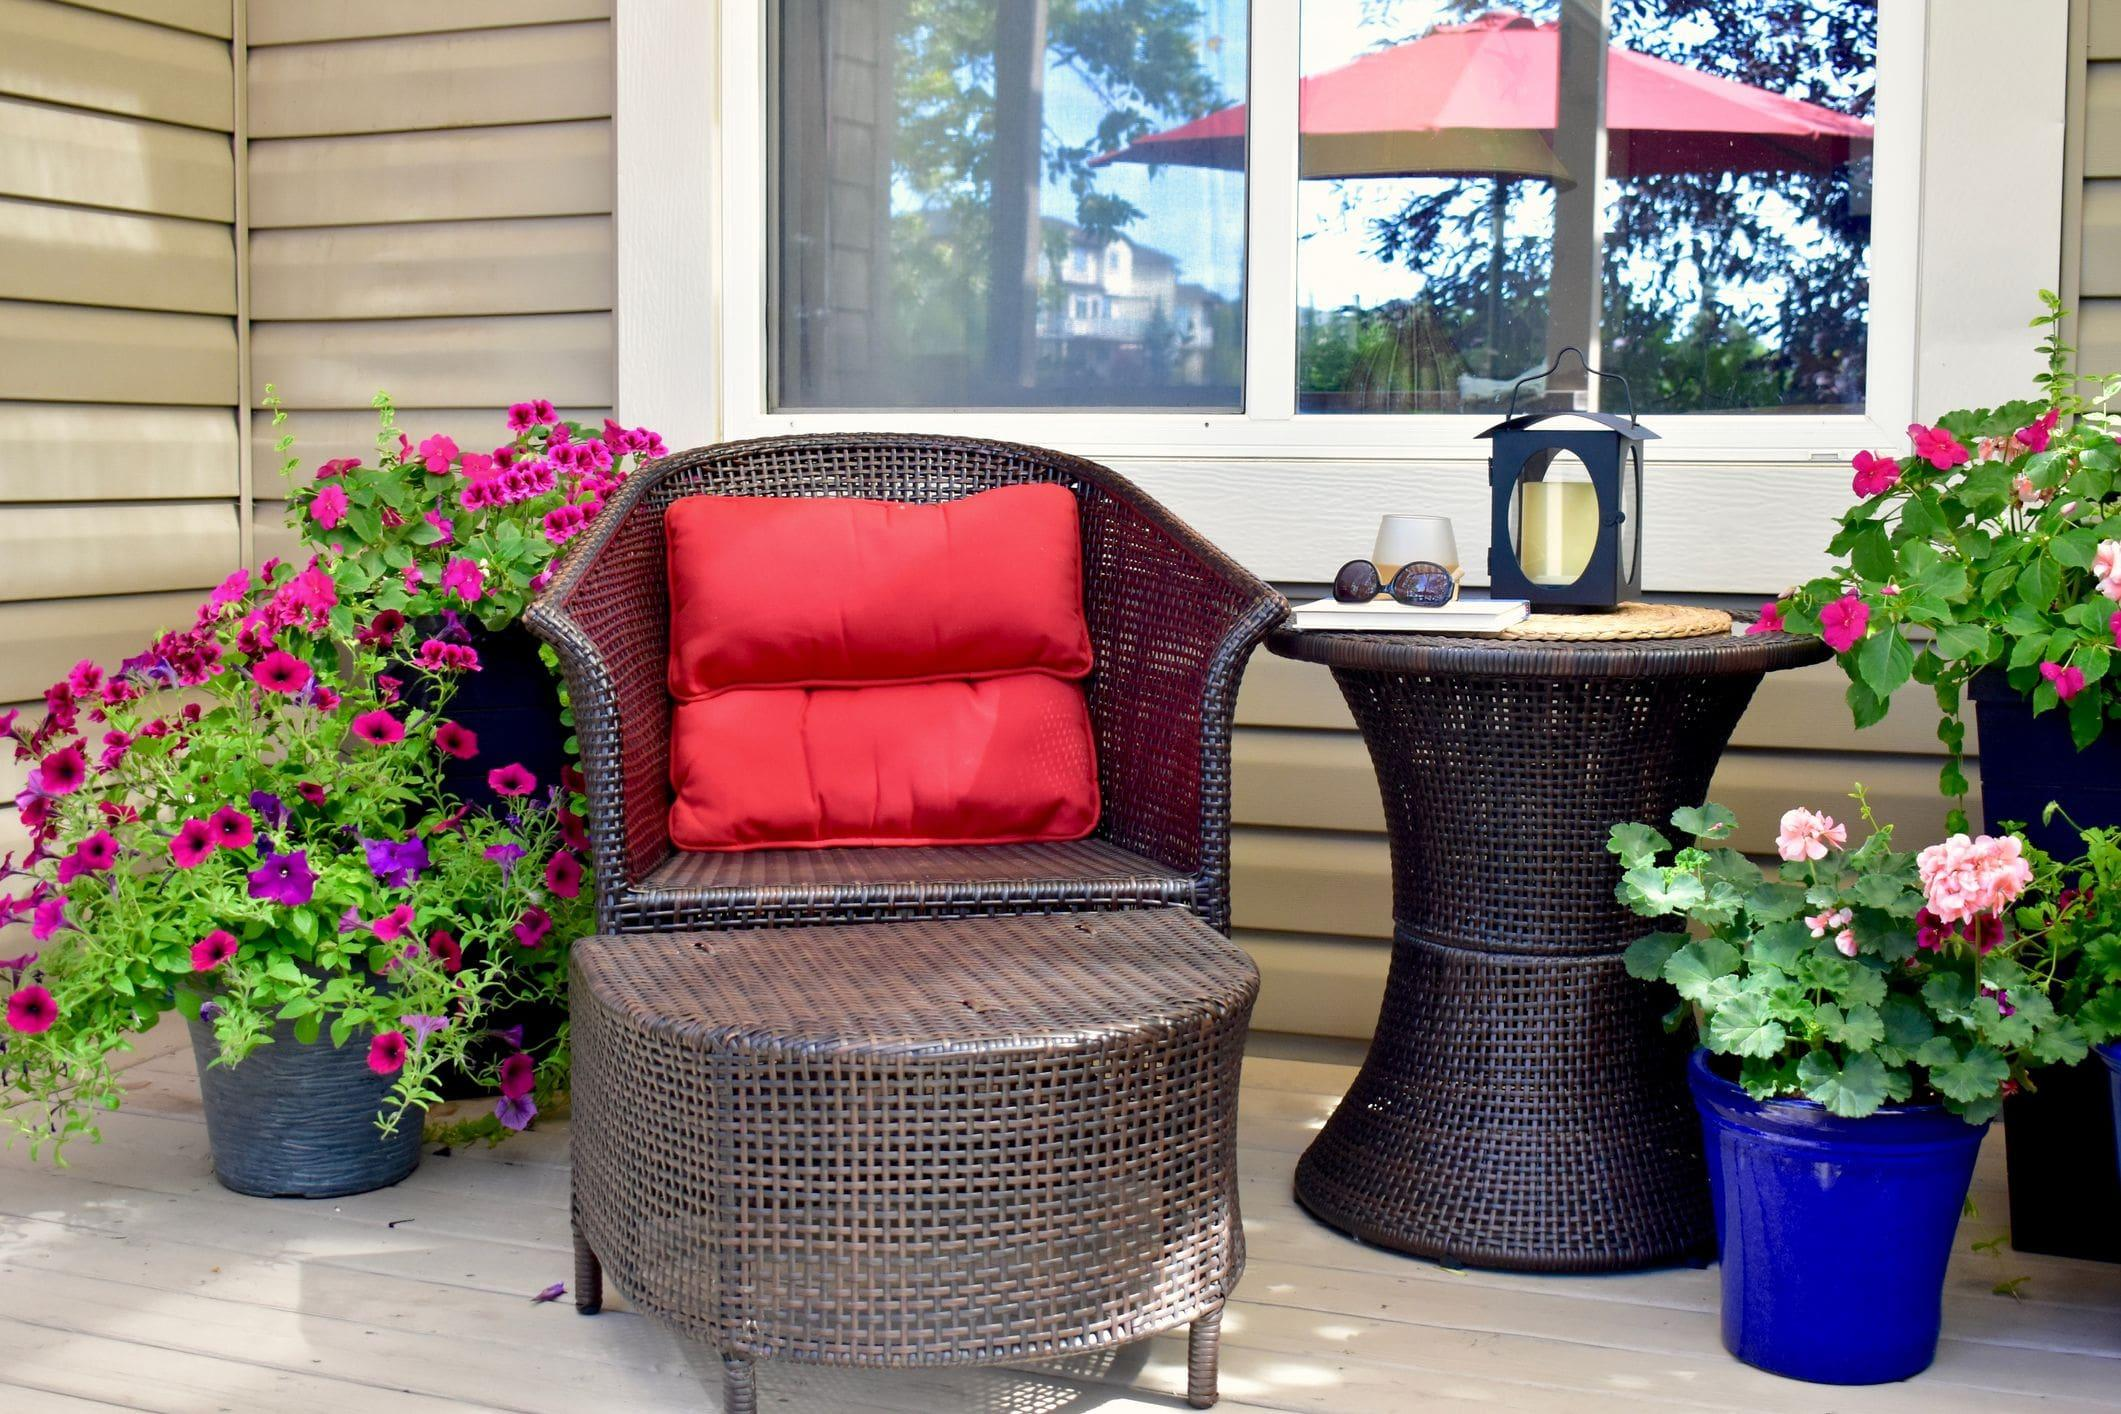 front porch home accessories and plants